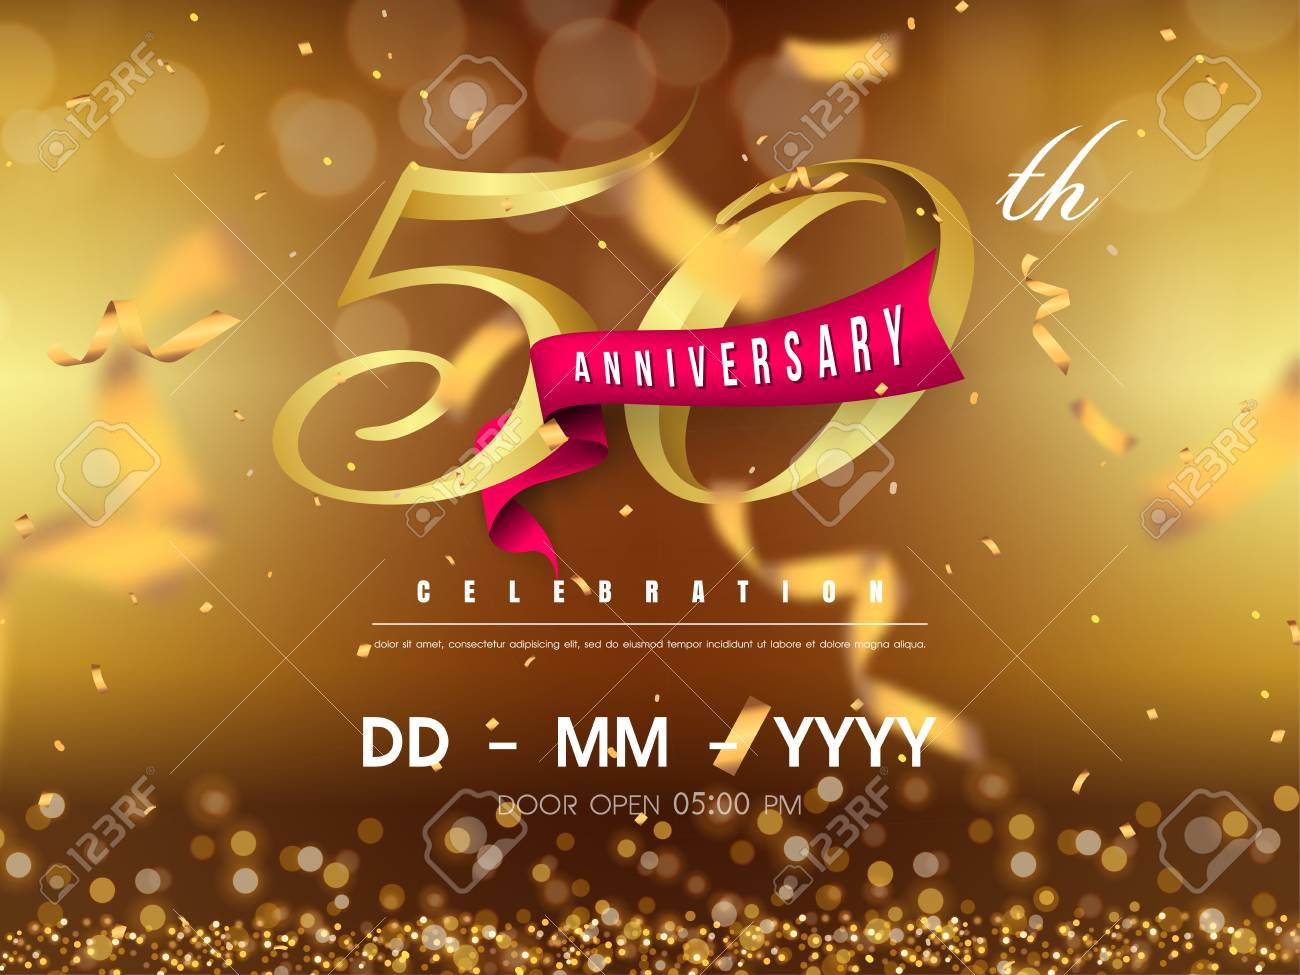 50 years anniversary logo template on gold background. 50th celebrating golden numbers with red ribbon vector and confetti isolated design elements - 118534462